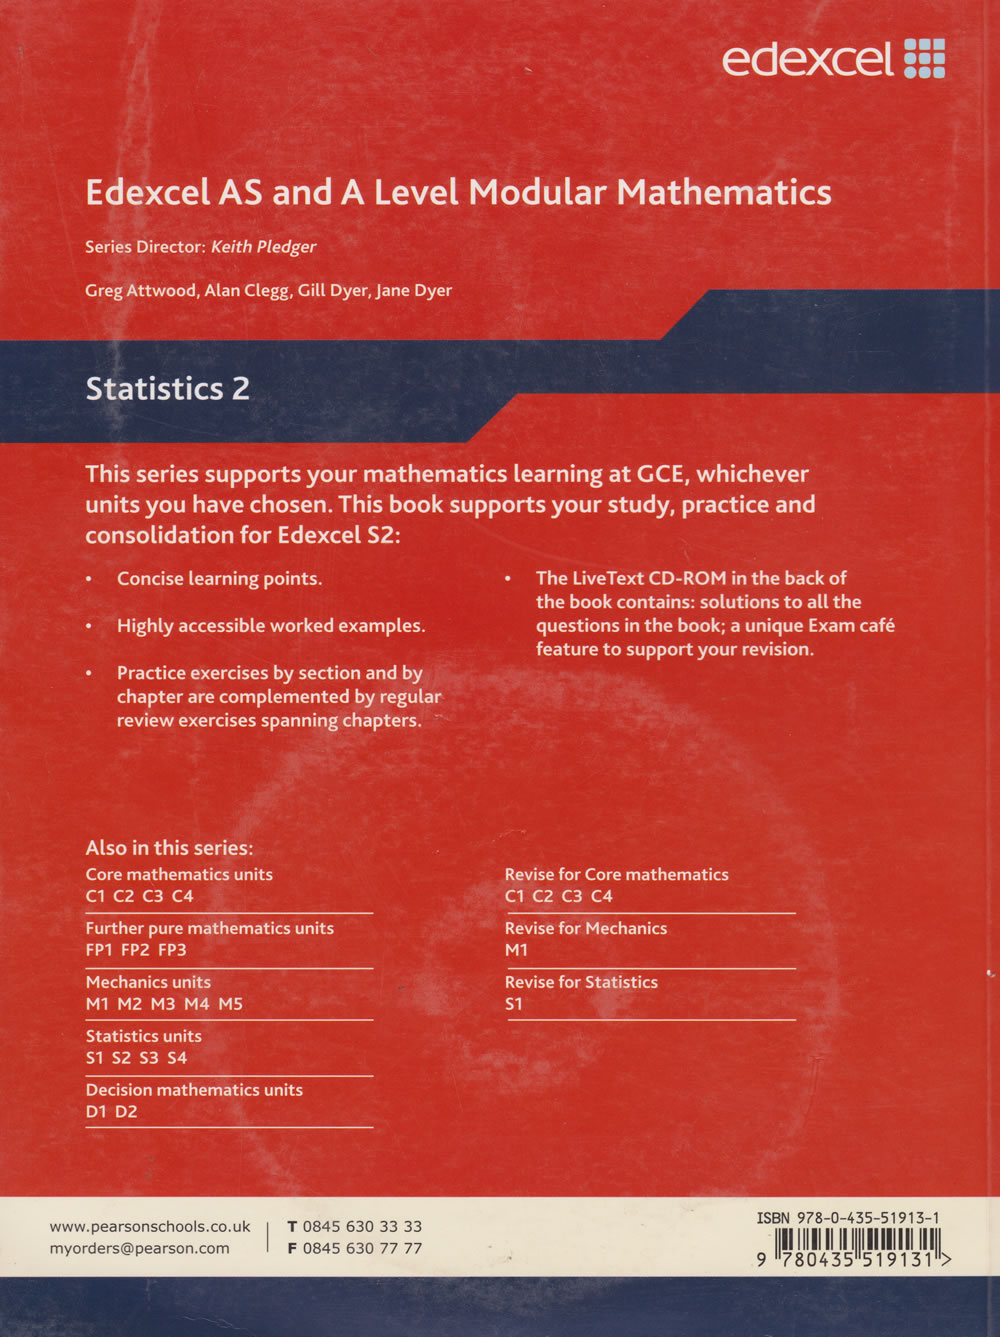 Statistics 2 Edexcel AS and A Level Modular Mathematics | Books,  Stationery, Computers, Laptops and more  Buy online and get free delivery  on orders